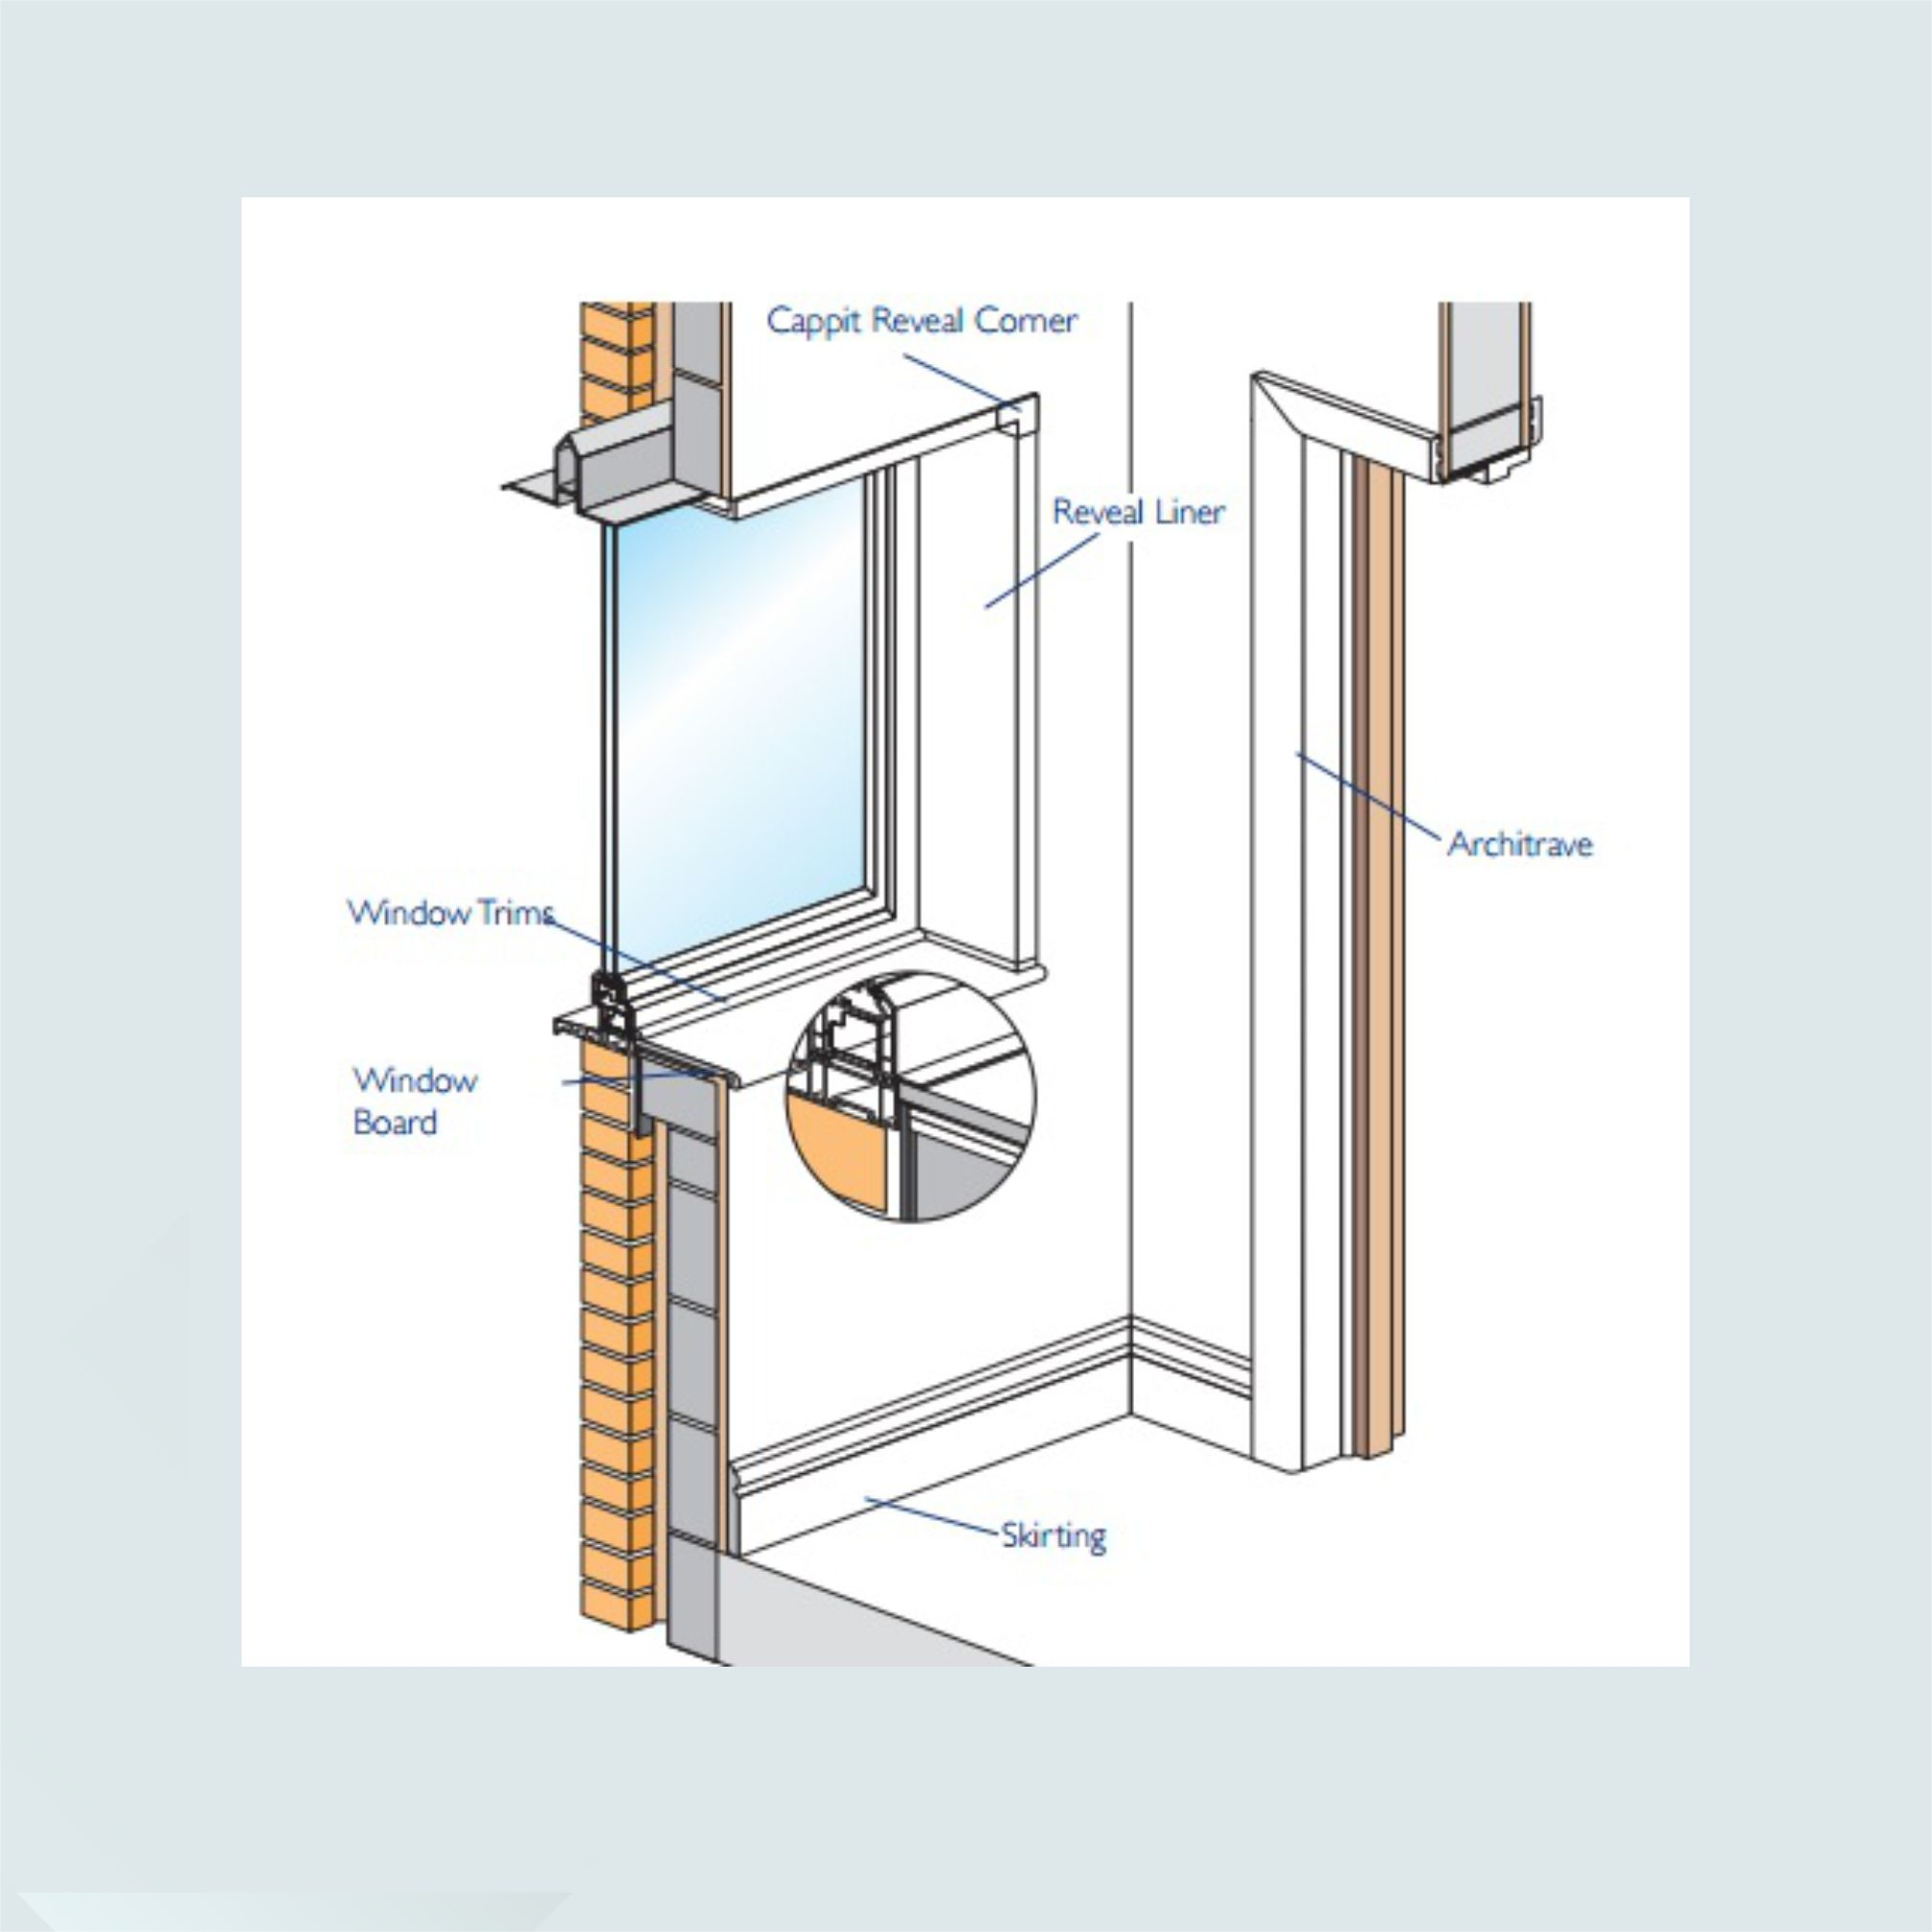 Window board diagram